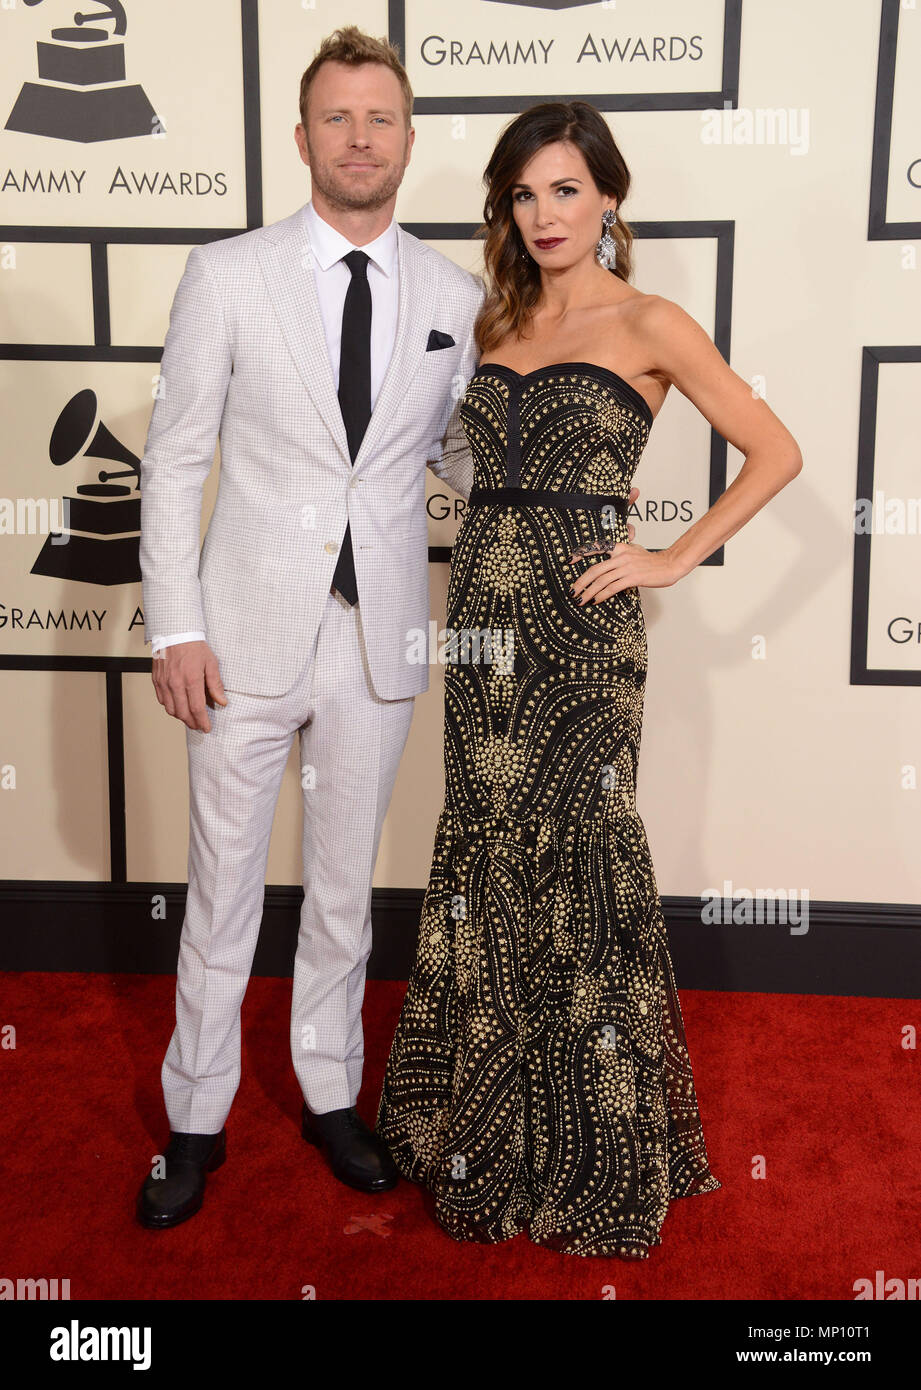 Cassidy Black Bentley Dierks Bentley 438 At The 57th Annual Grammy